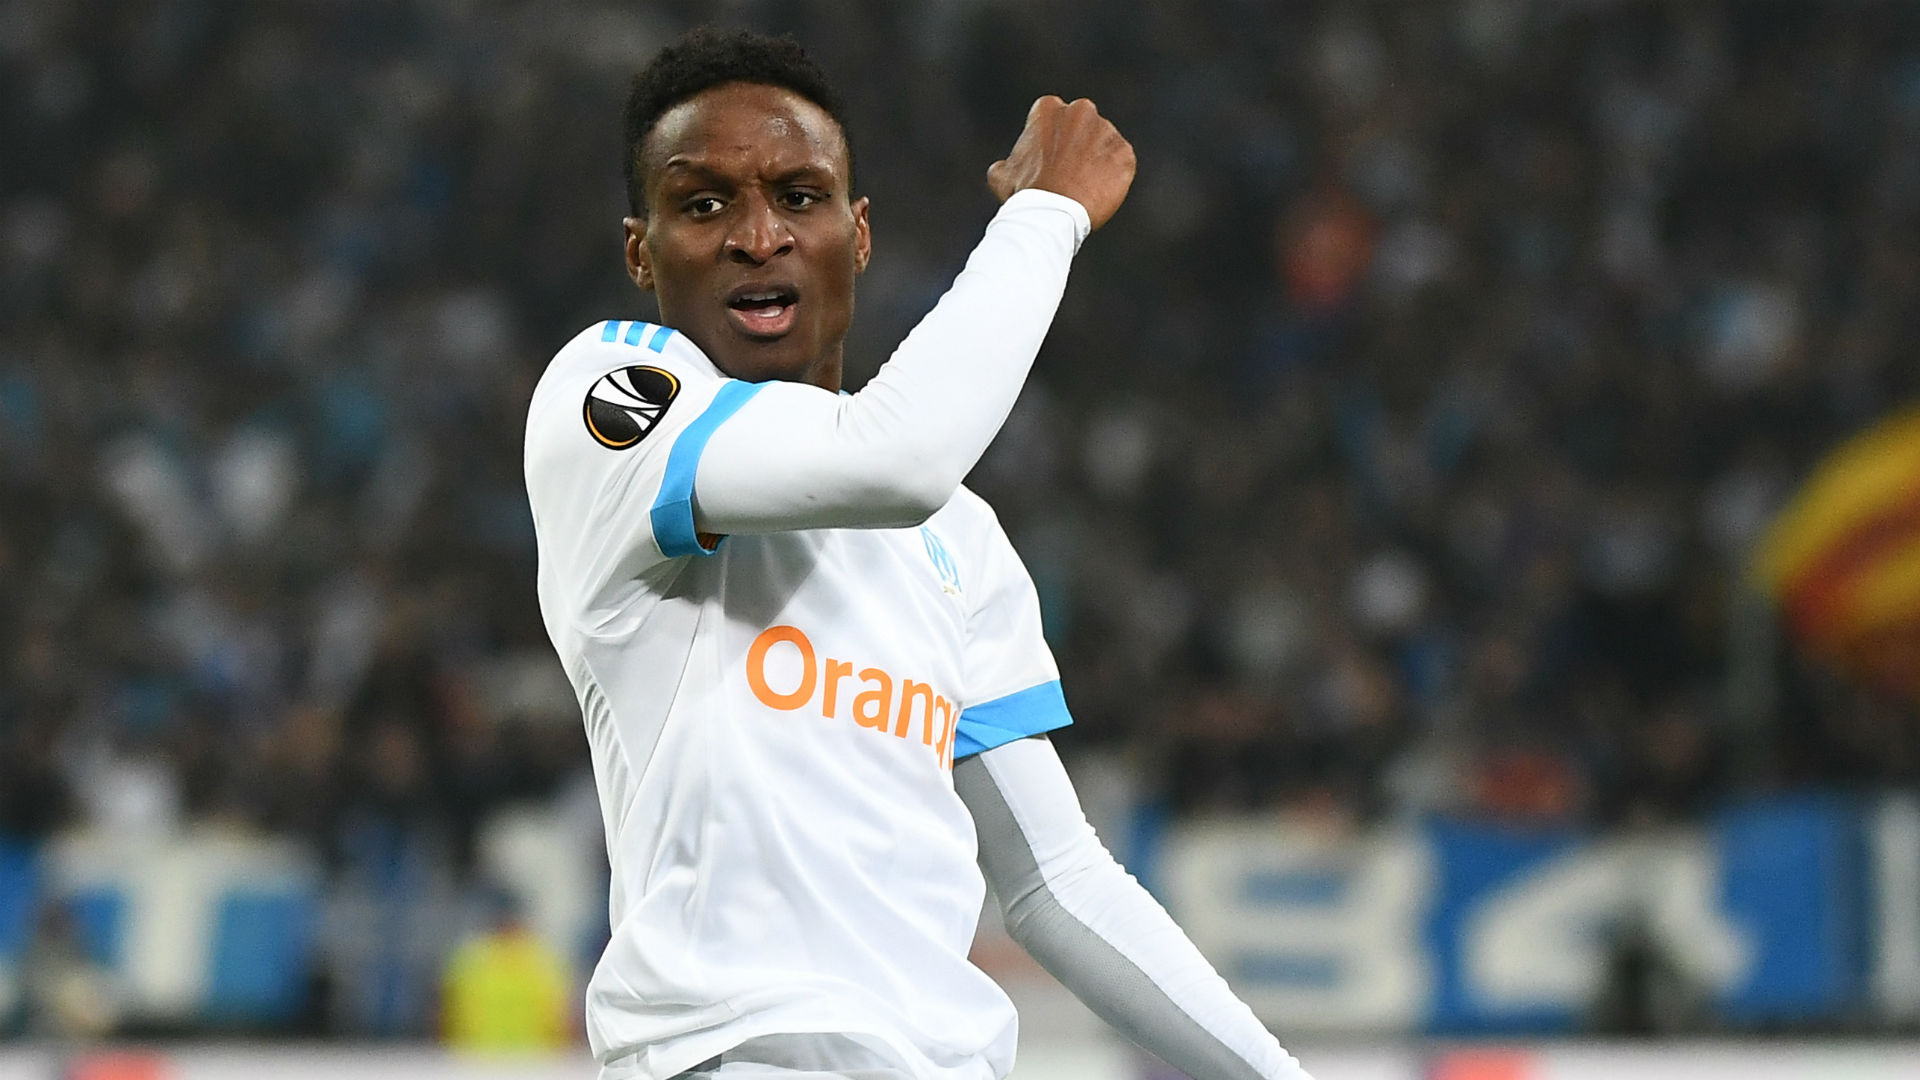 Bayern Munich sign €10m right-back Sarr from Marseille in deal until 2024